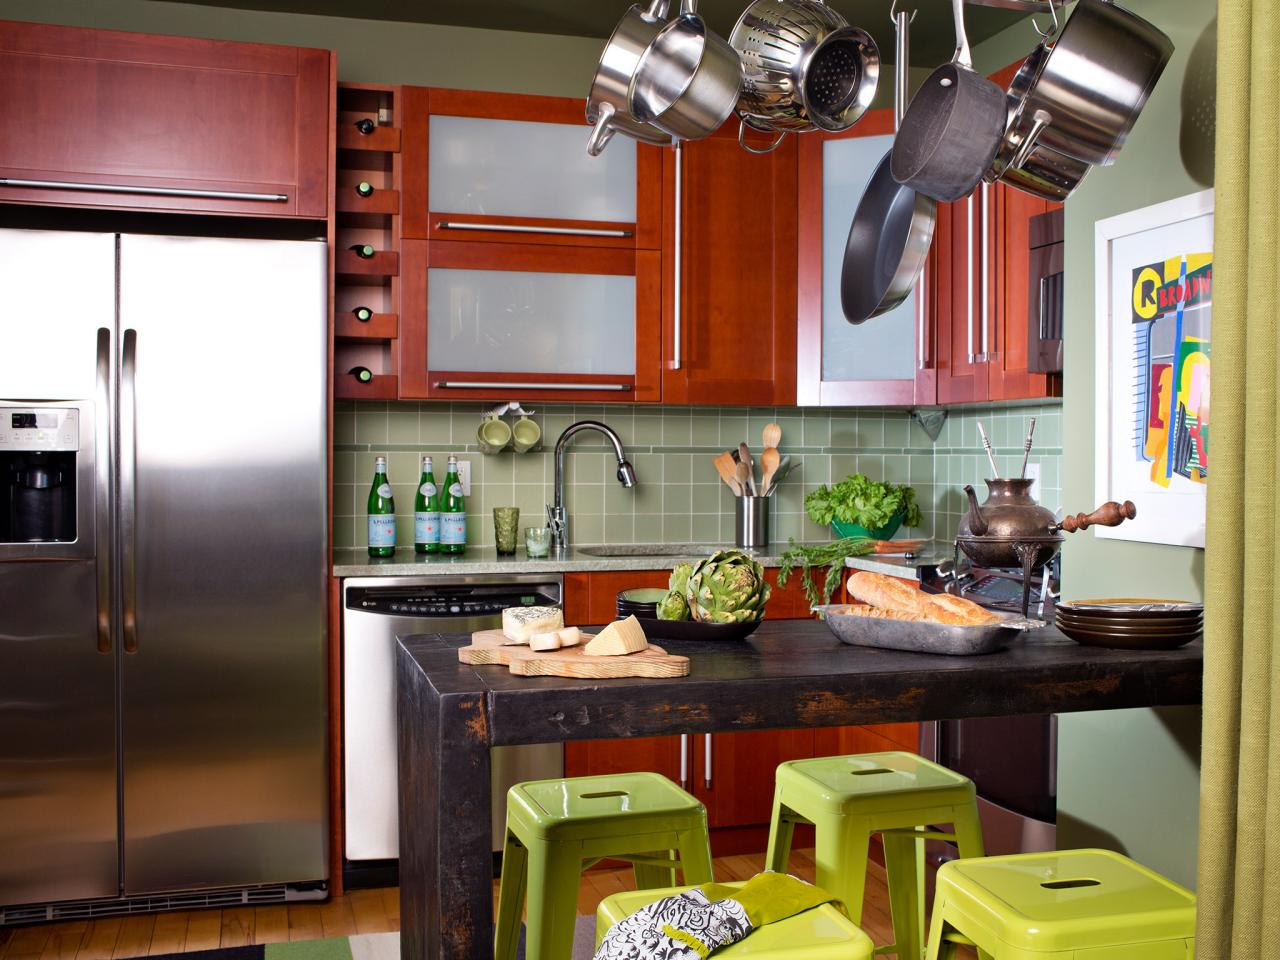 Small Kitchen Cabinets: Pictures, Ideas & Tips From HGTV | HGTV